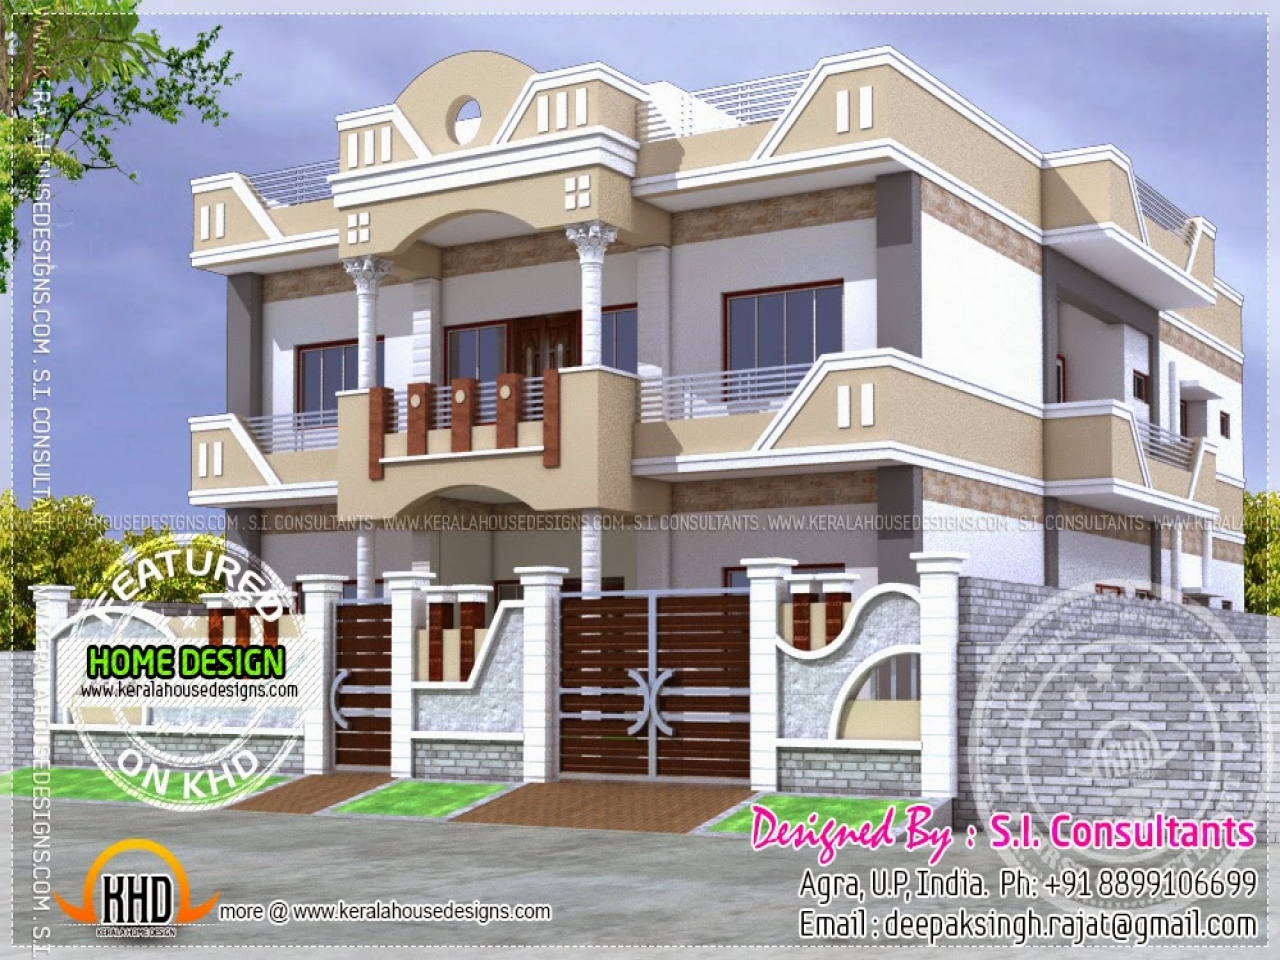 Home Design In India: Indian Building Design House Plans Designs India, Indian